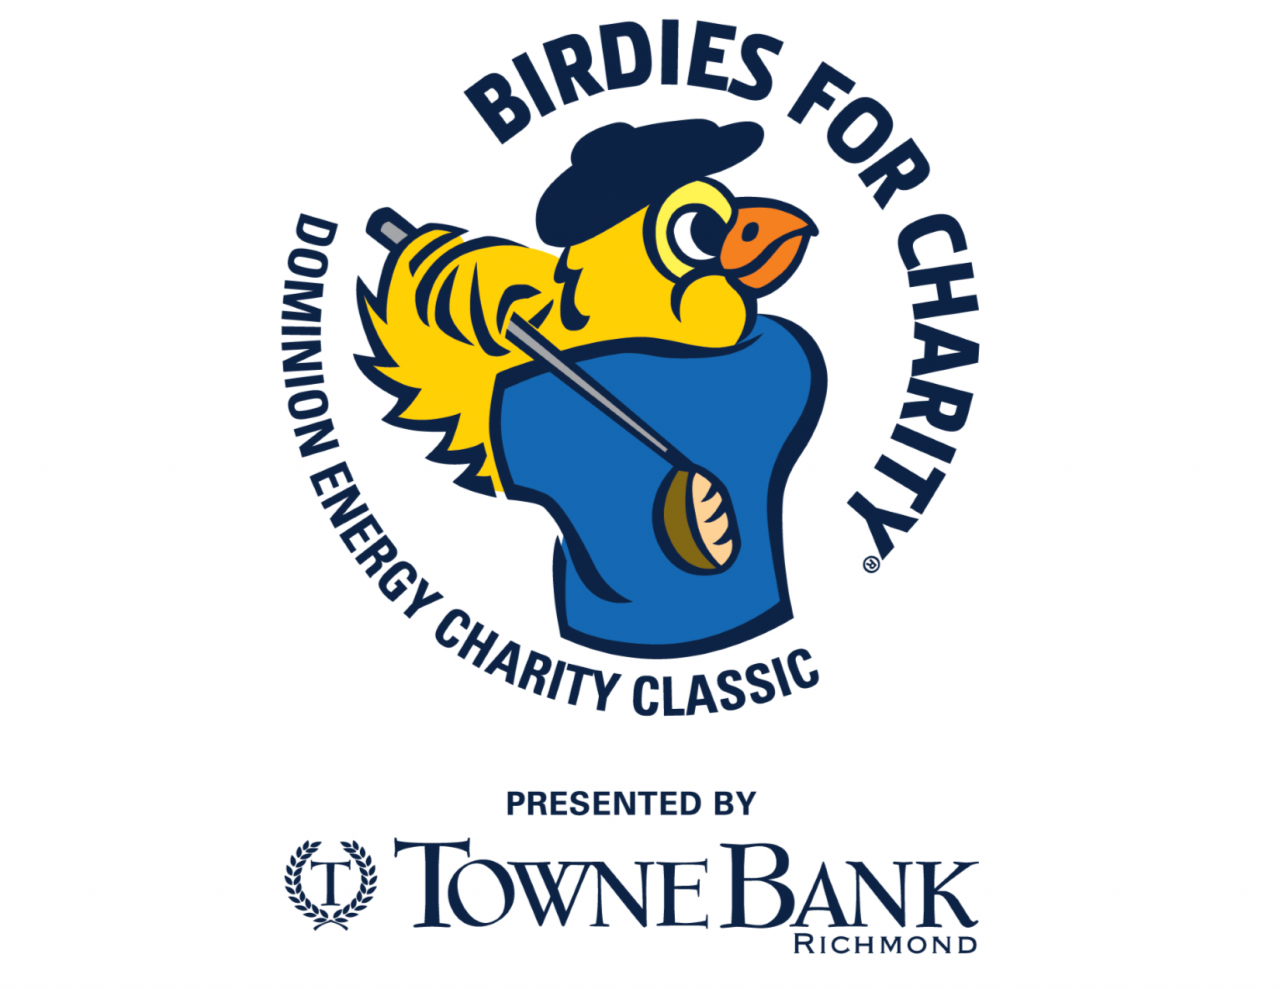 BIRDIES-FOR-CHARITY